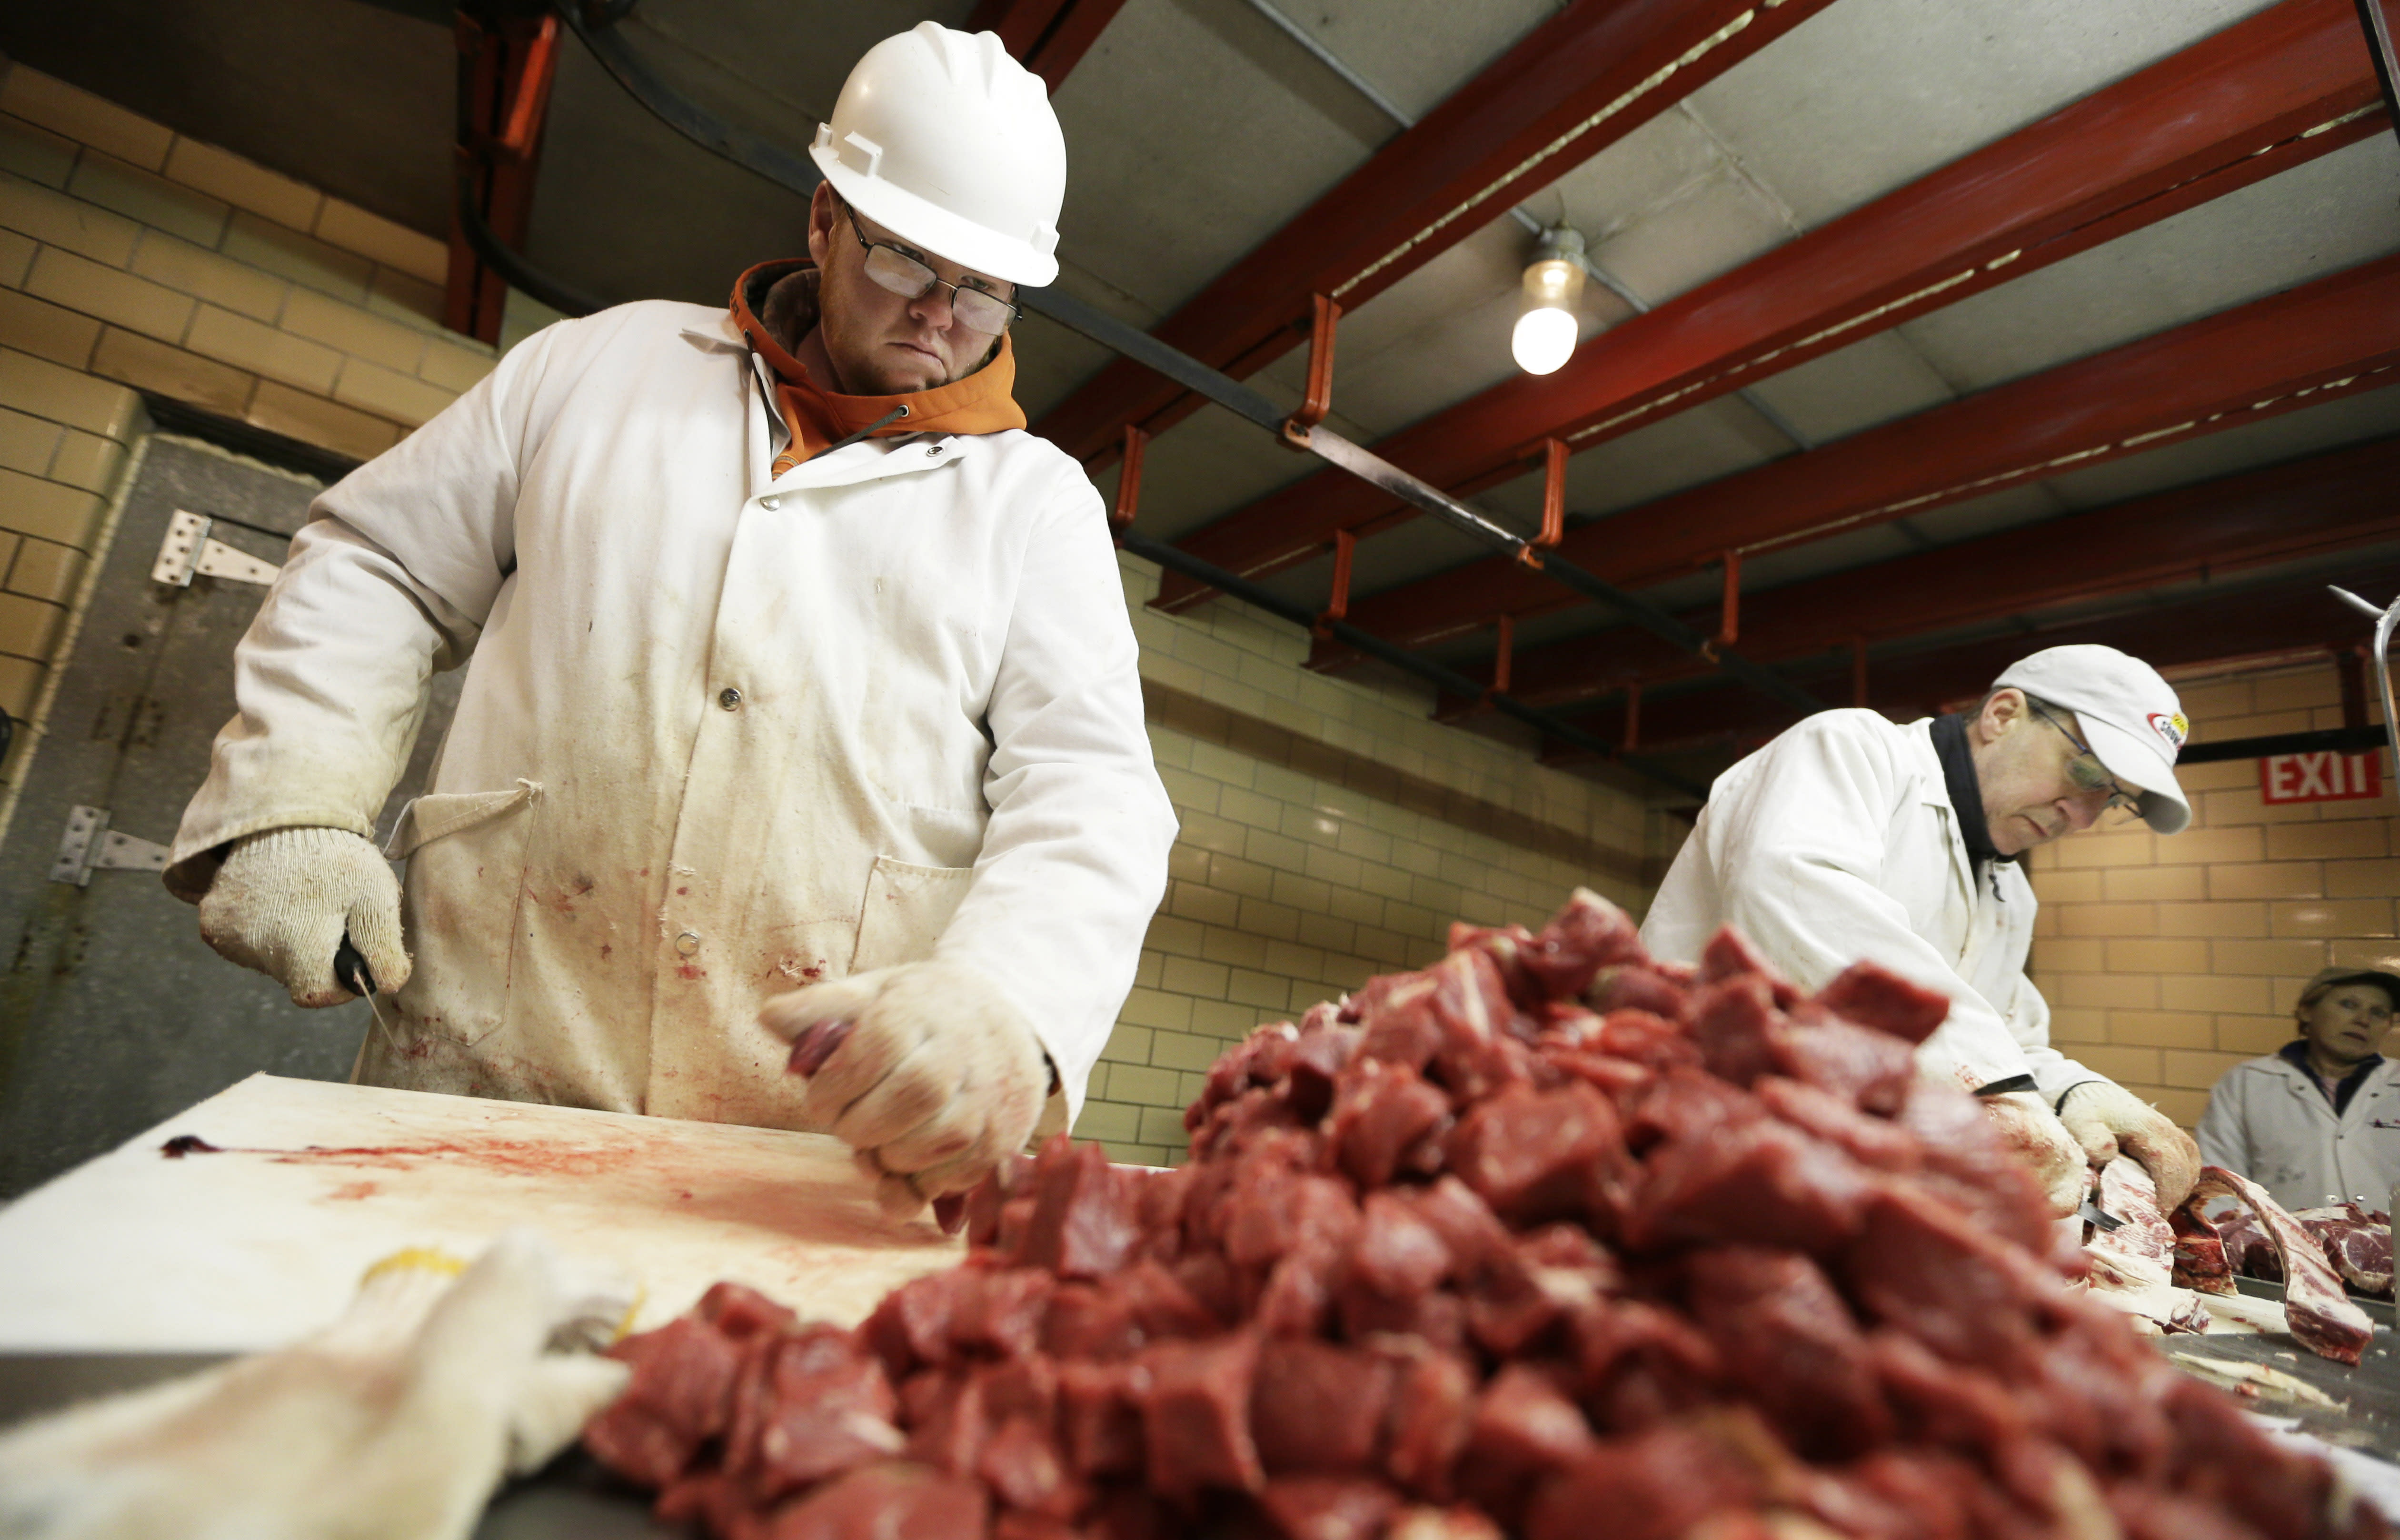 More want local beef, but fewer want tough job of cutting it